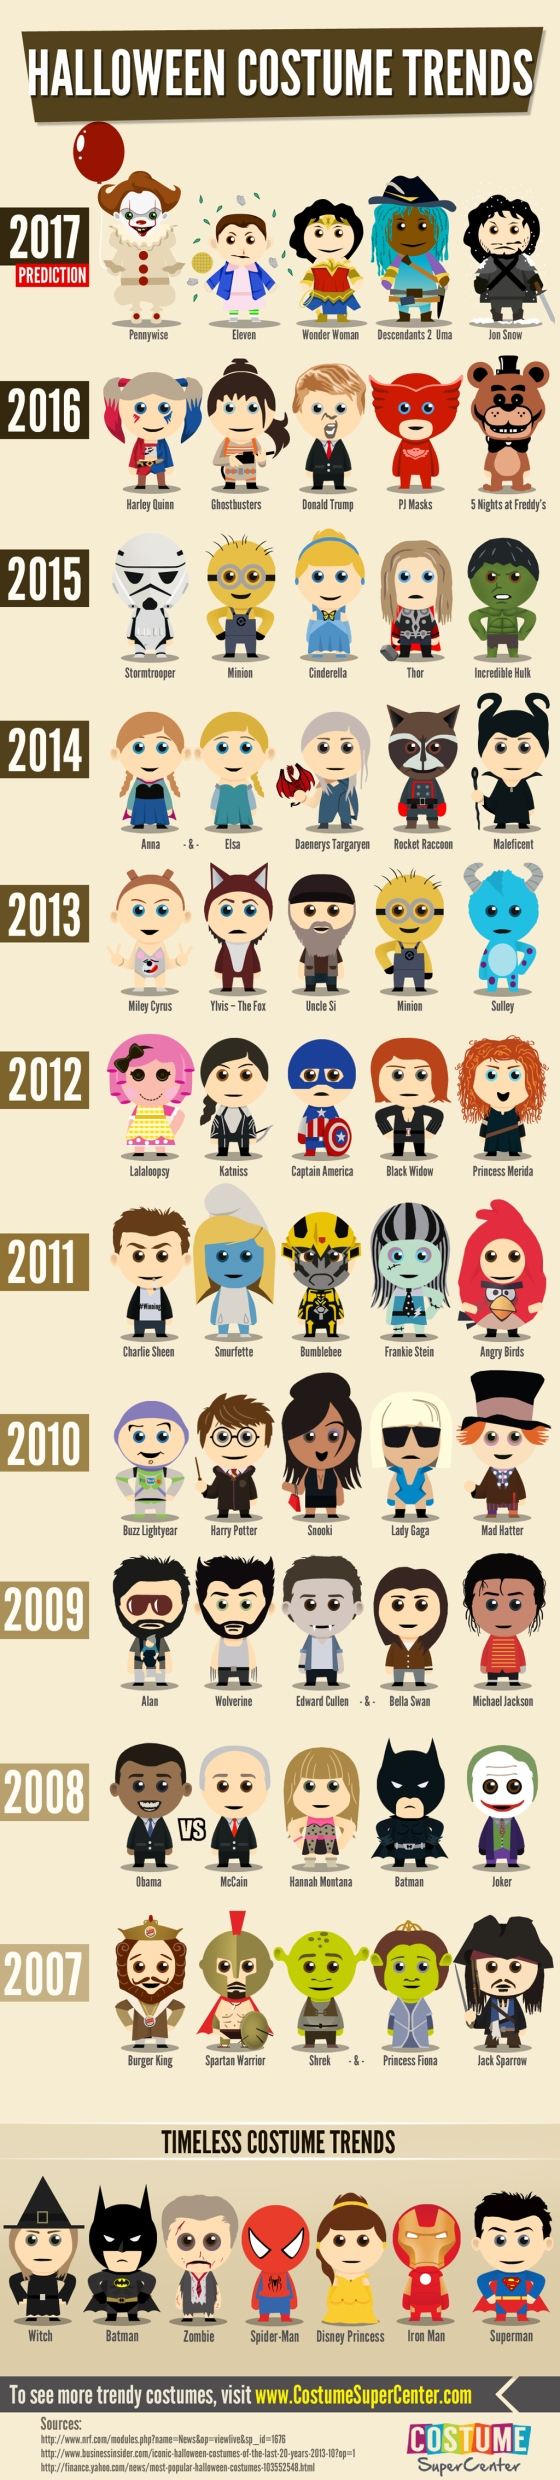 Infographic : Most Popular Halloween Costume Trends 2017